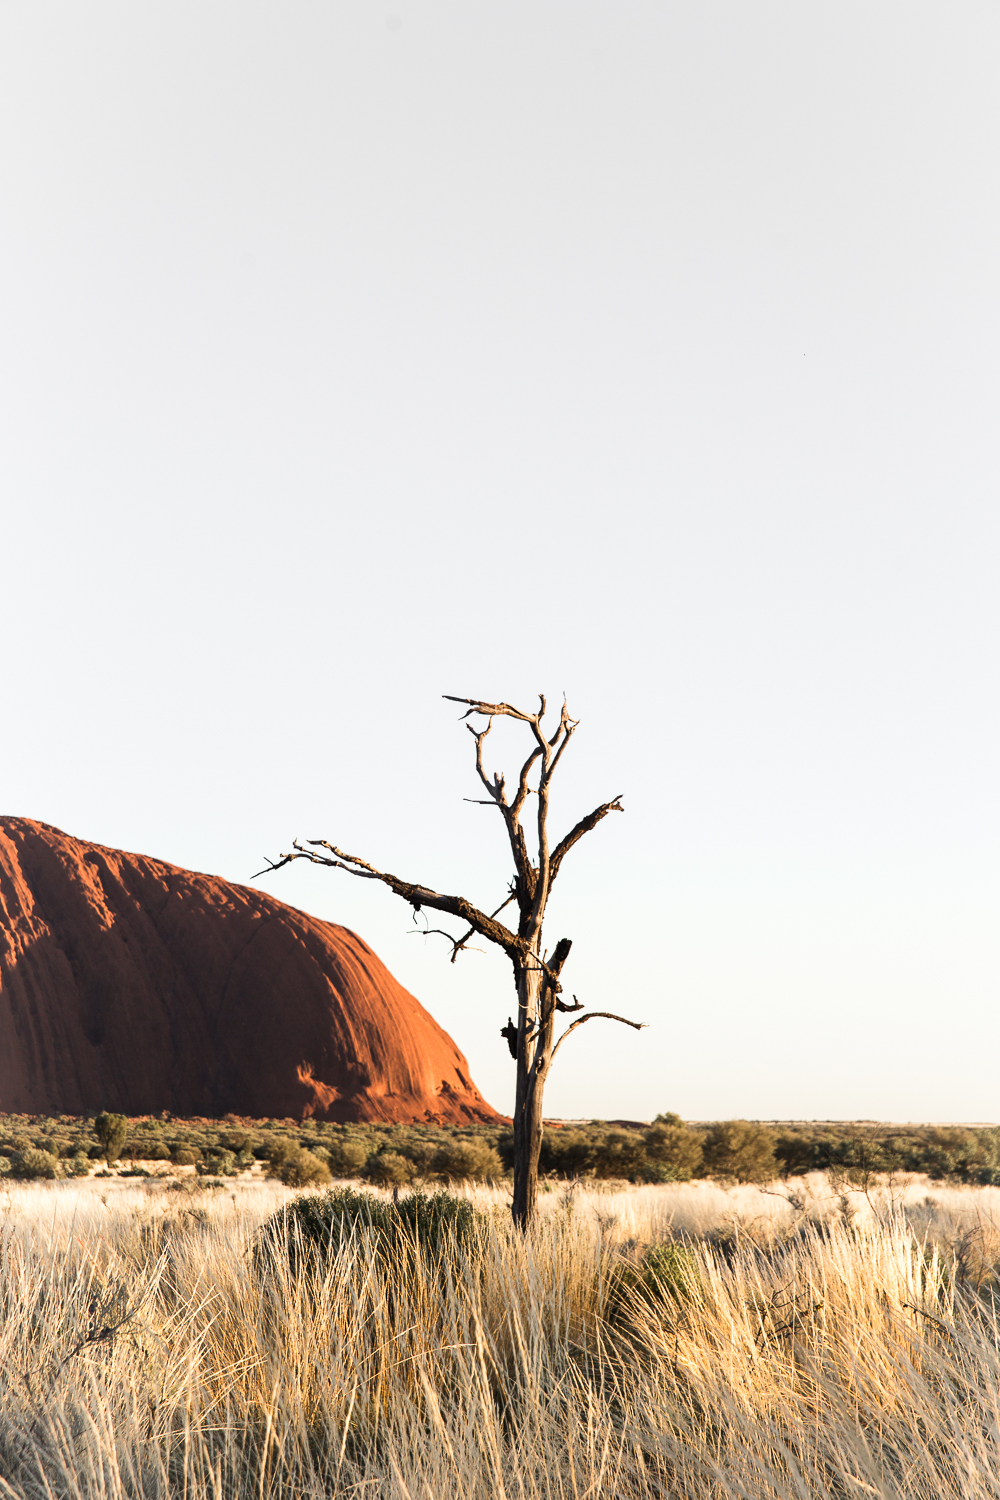 Lean+Timms+Uluru++(29+of+57).jpg